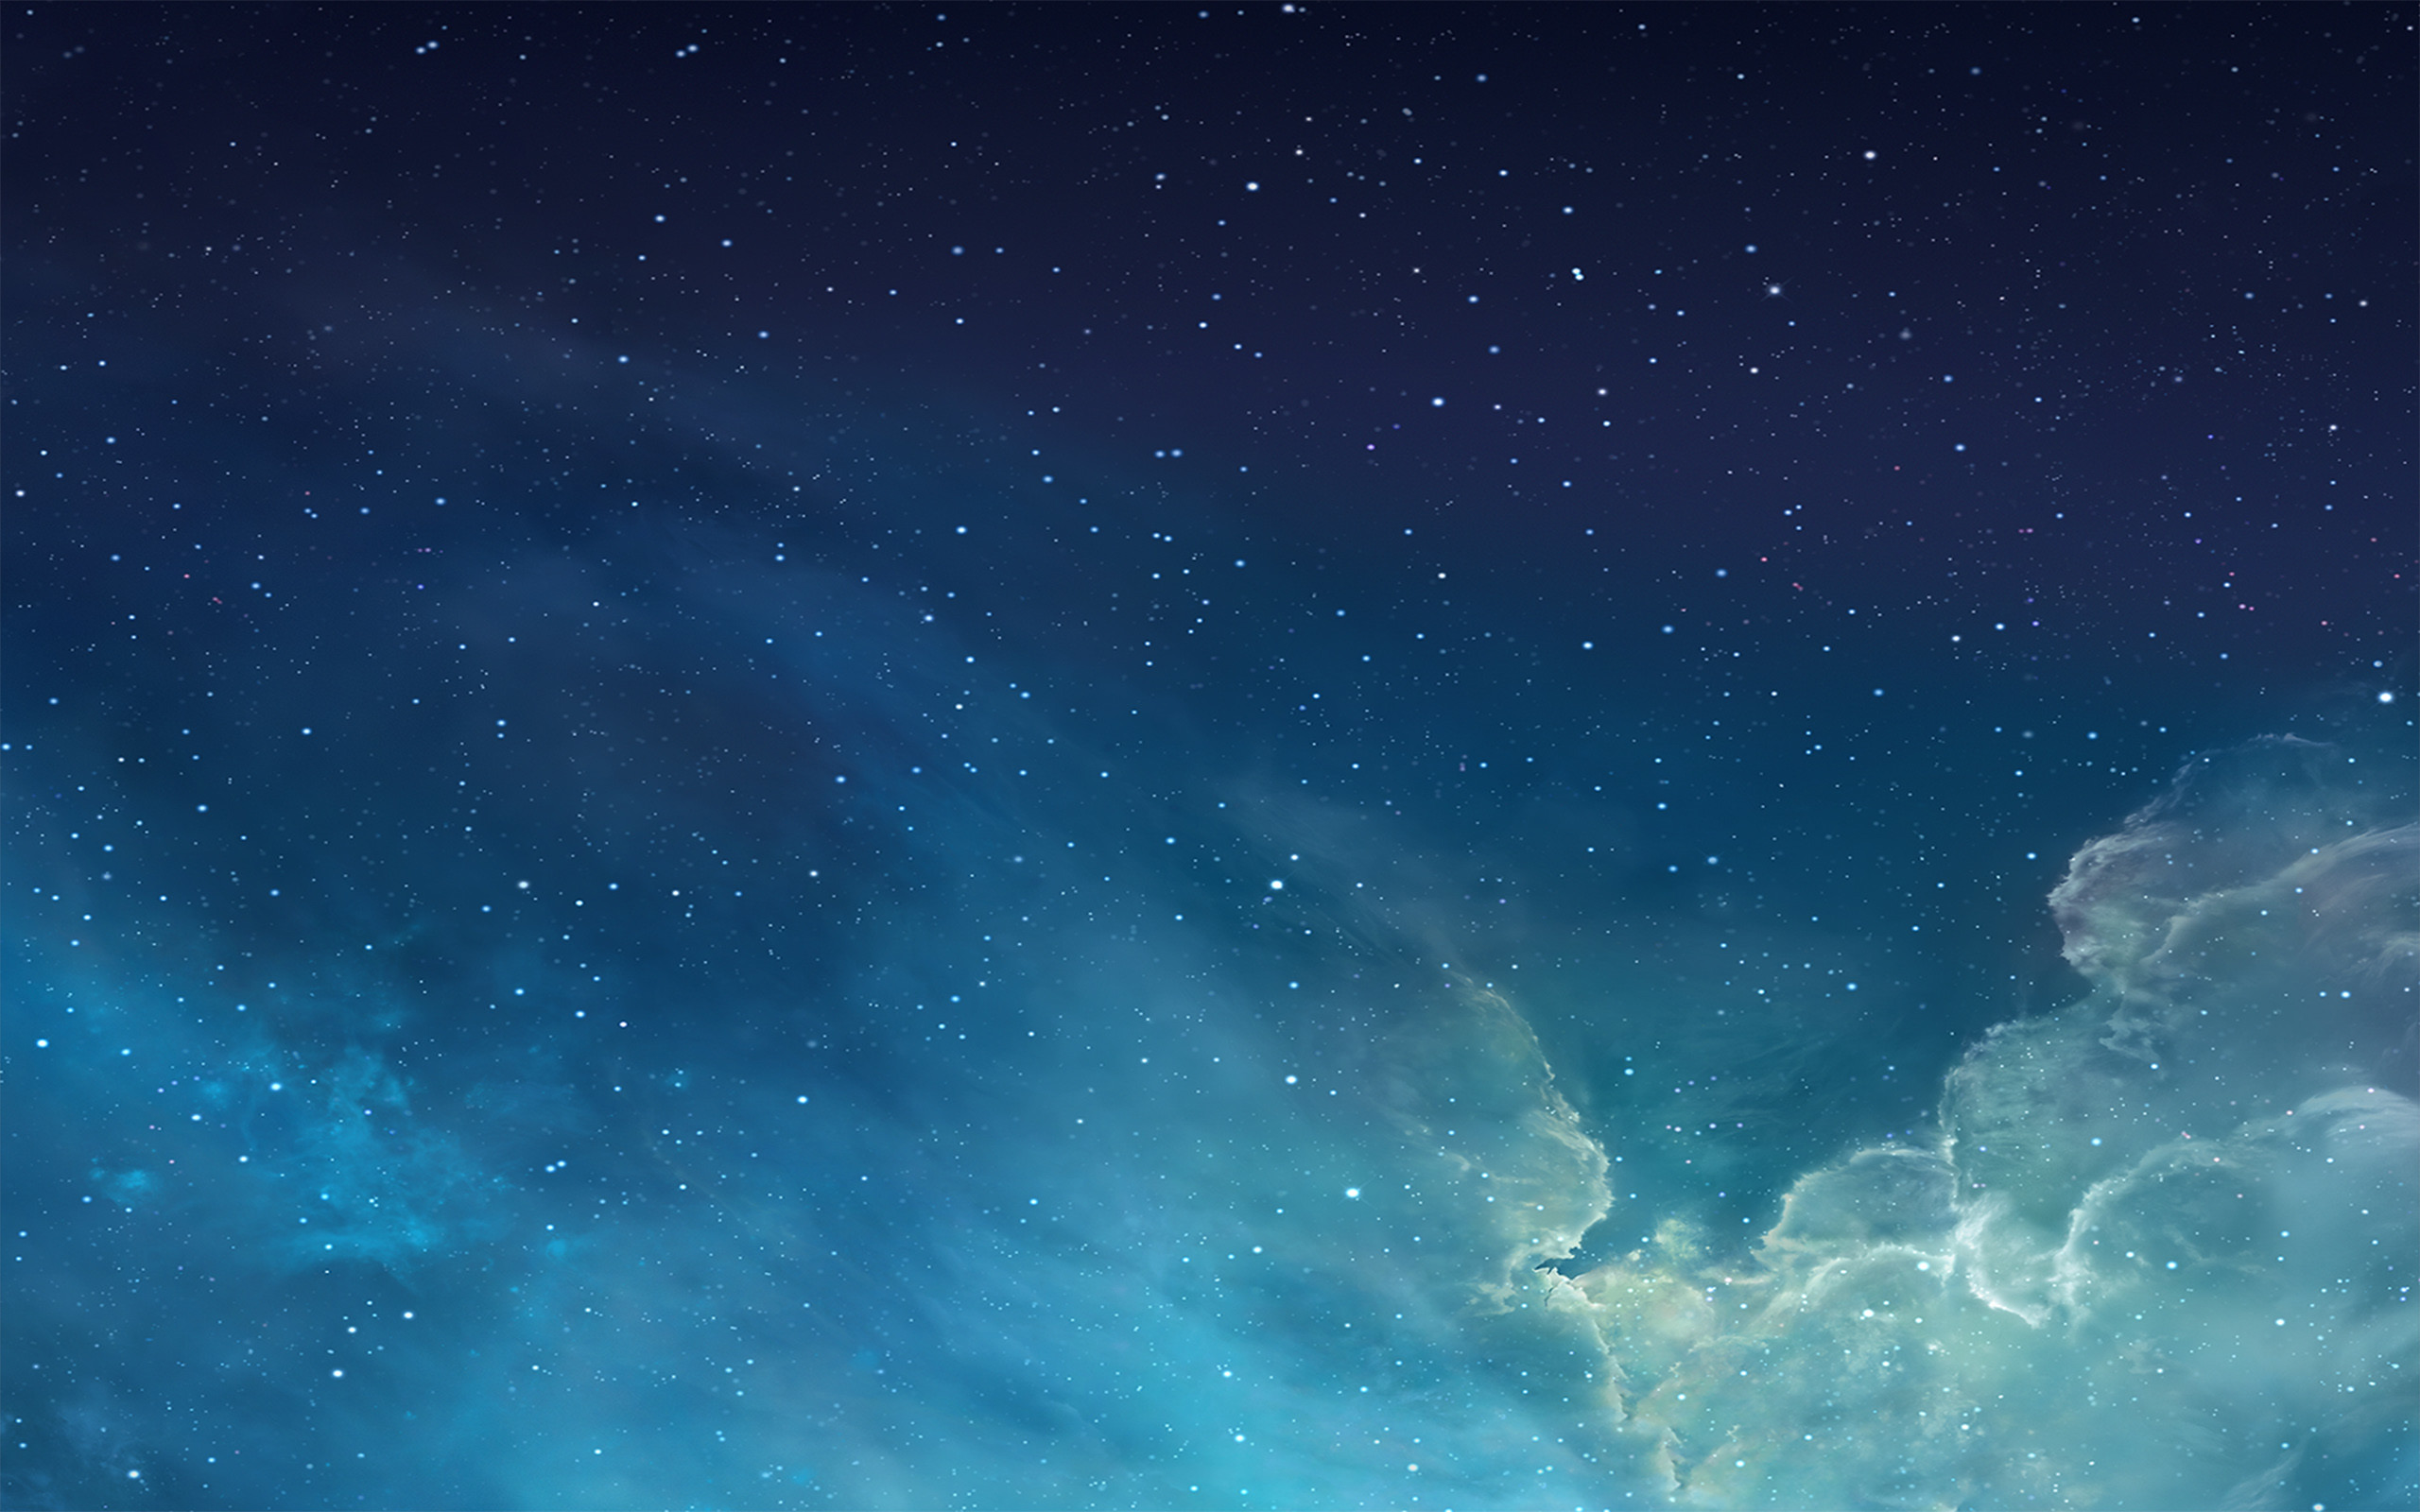 galaxy s3 desktop wallpaper (62+ images)